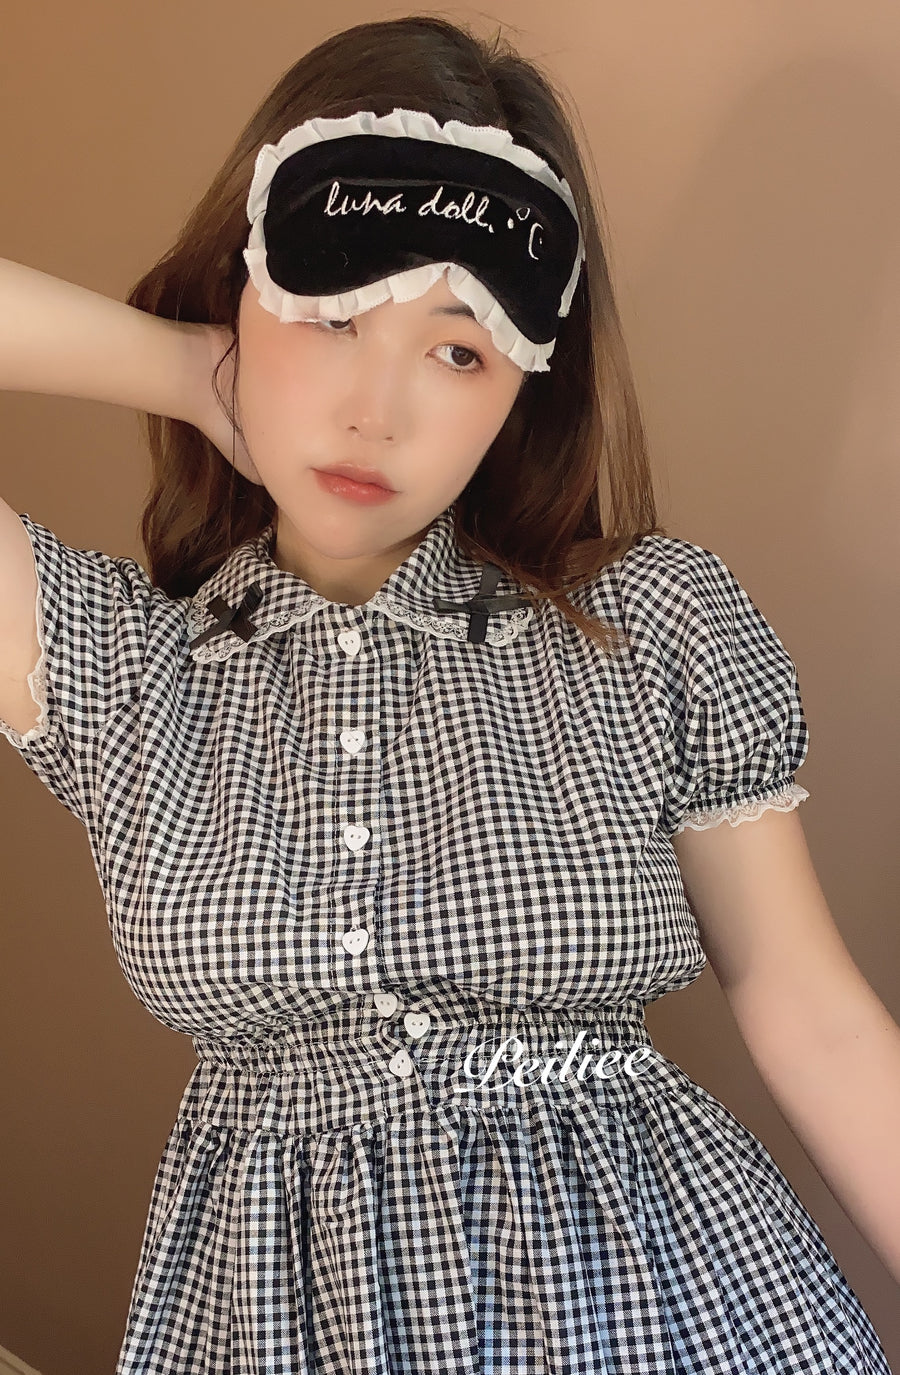 [By Peiliee] Afternoon Tea At Tiffany Gingham Babydoll Mini Dress Lolita 1997 style - Peiliee Shop